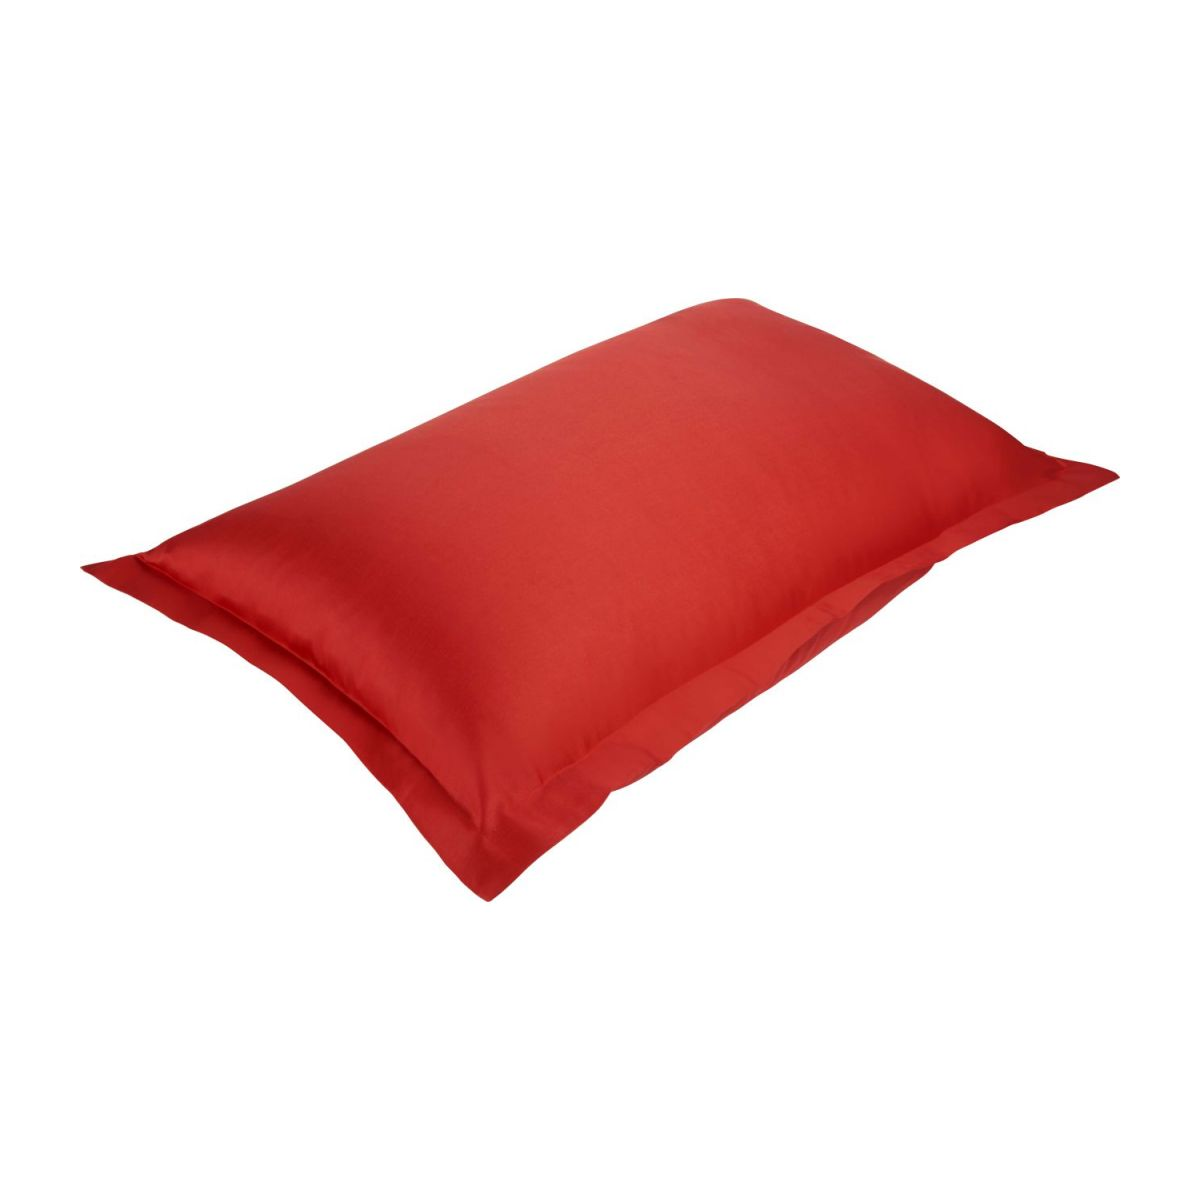 Pillowcase 50 x 80 cm, red n°1